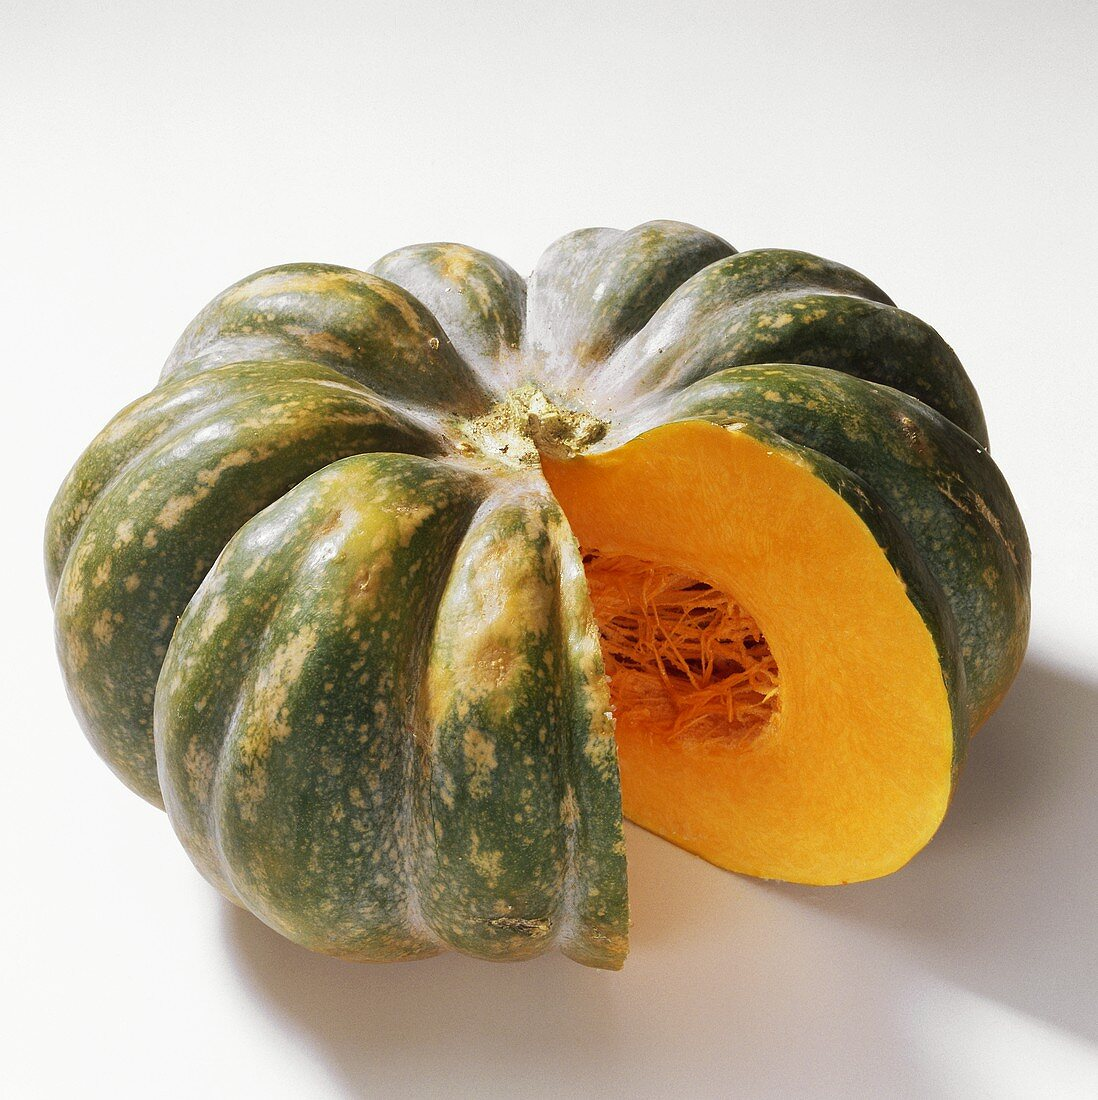 Winter squash (Cucurbita moschata), a piece cut off